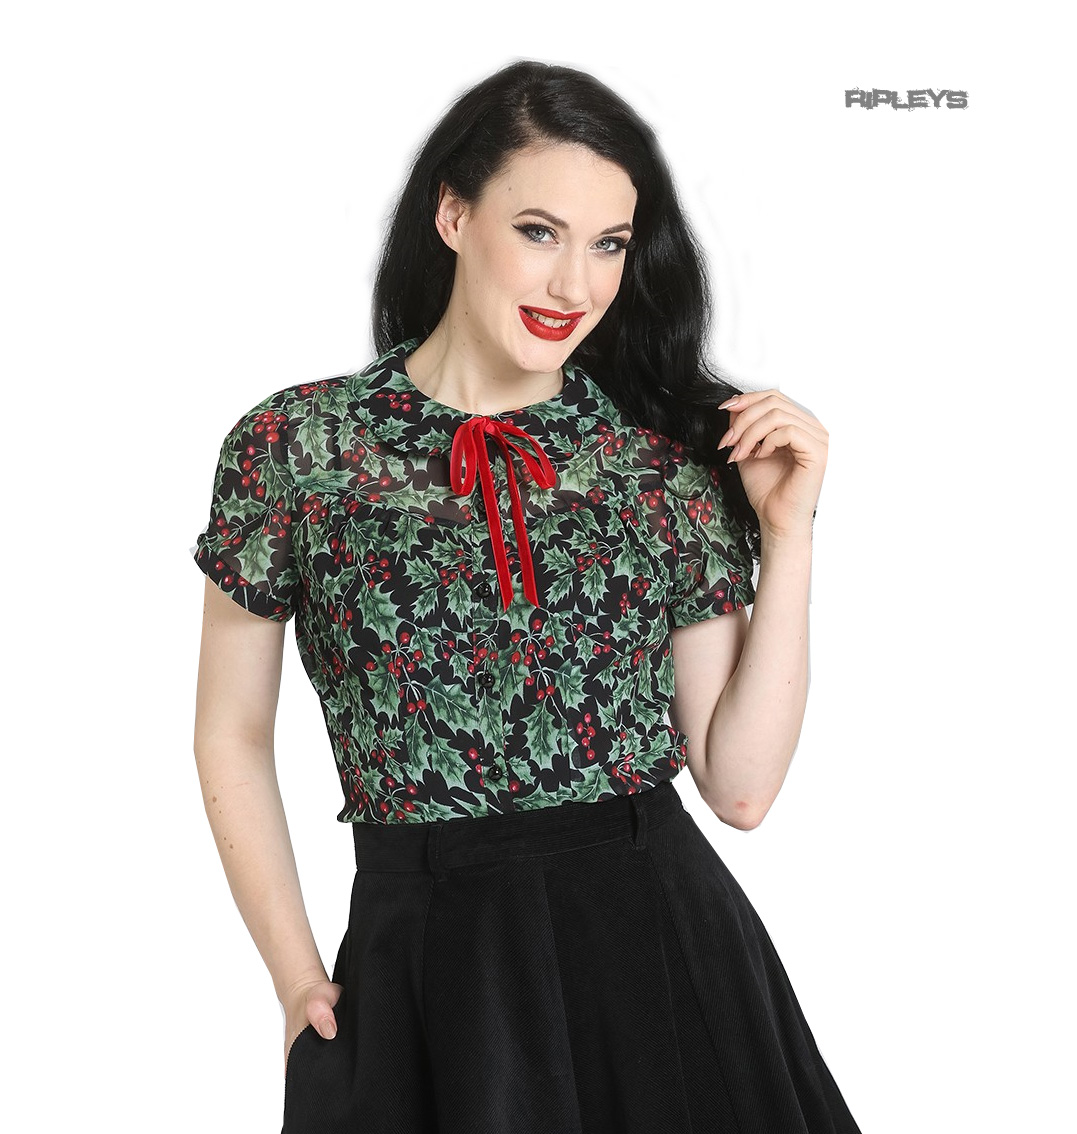 Hell-Bunny-50s-Shirt-Top-Christmas-Festive-HOLLY-Berry-Blouse-Black-All-Sizes thumbnail 6